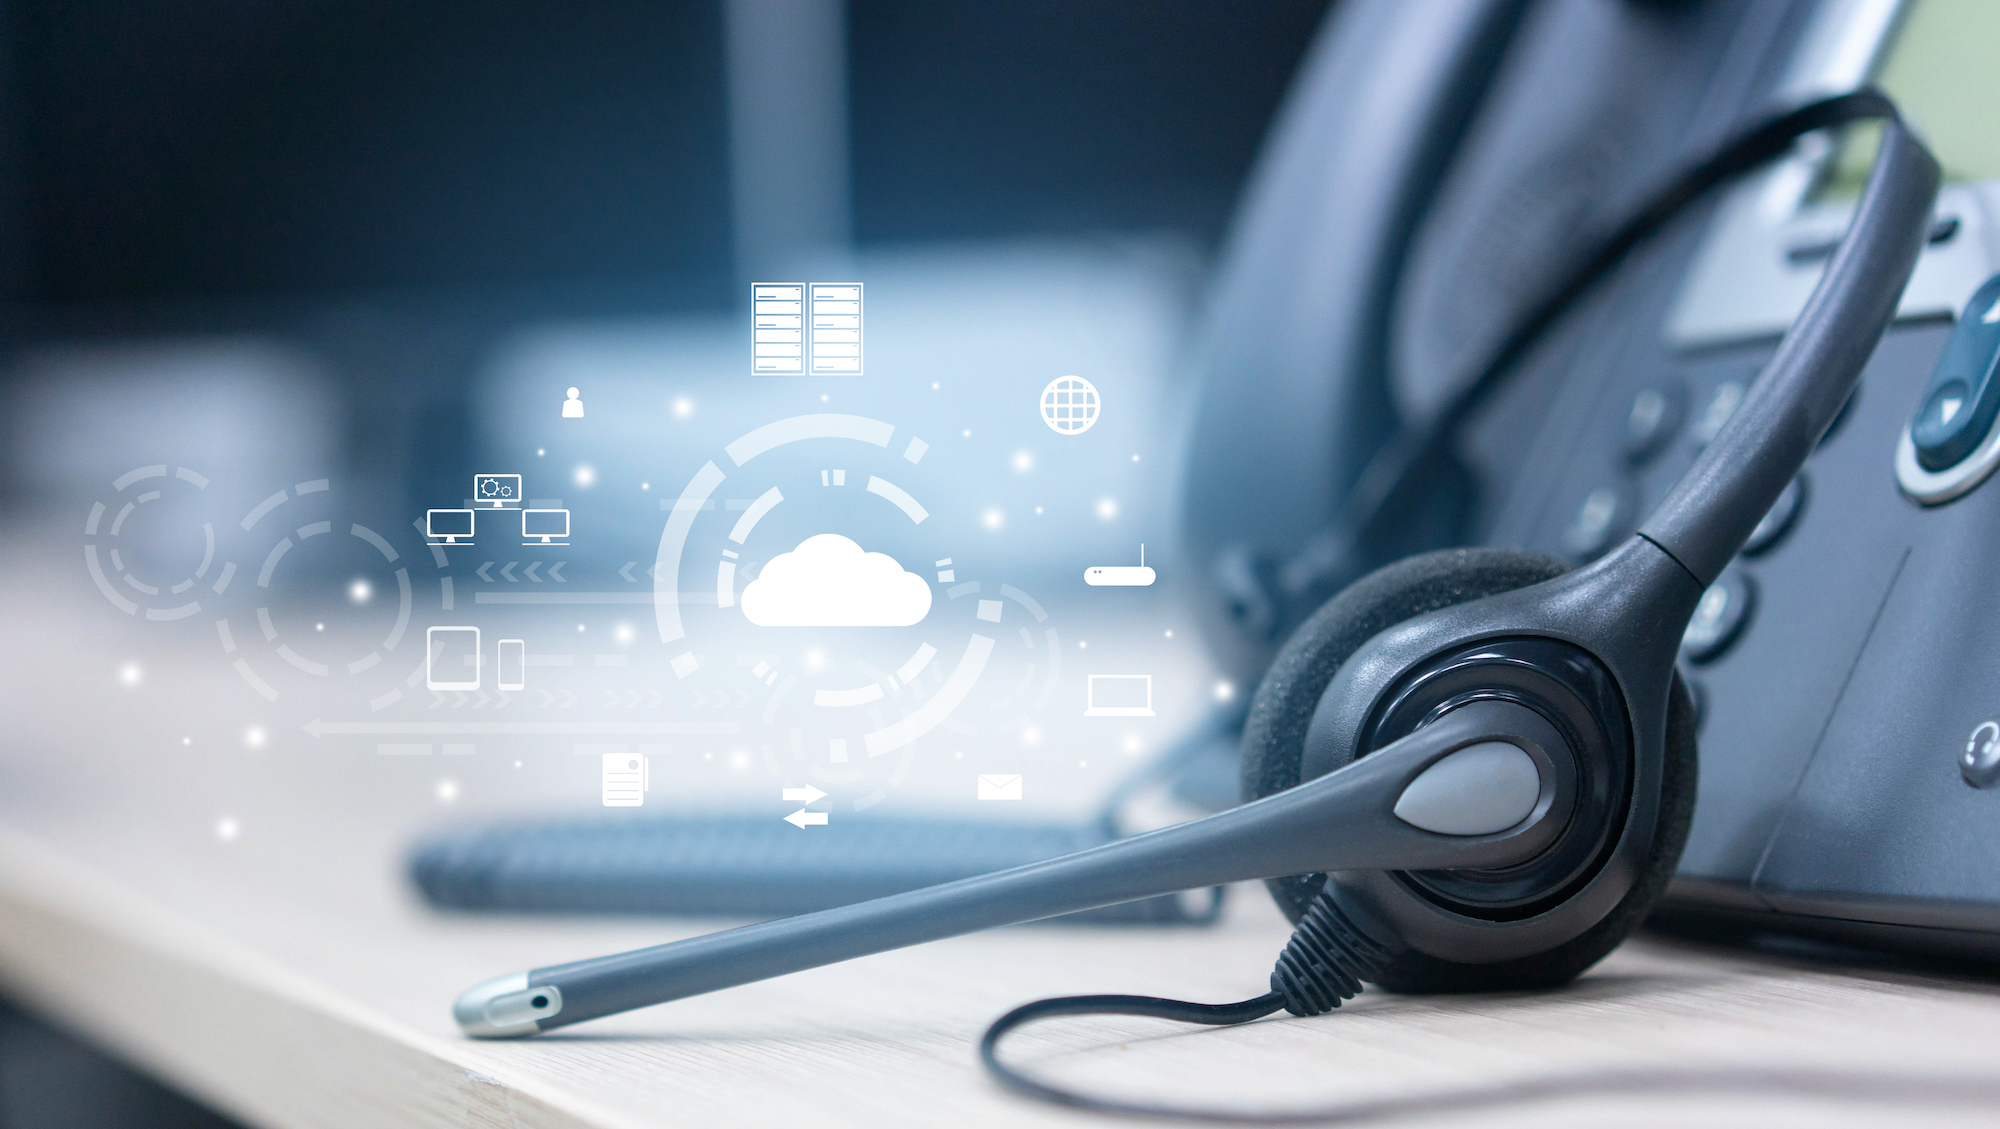 Your jargon-busting guide to cloud computing and telephony terms